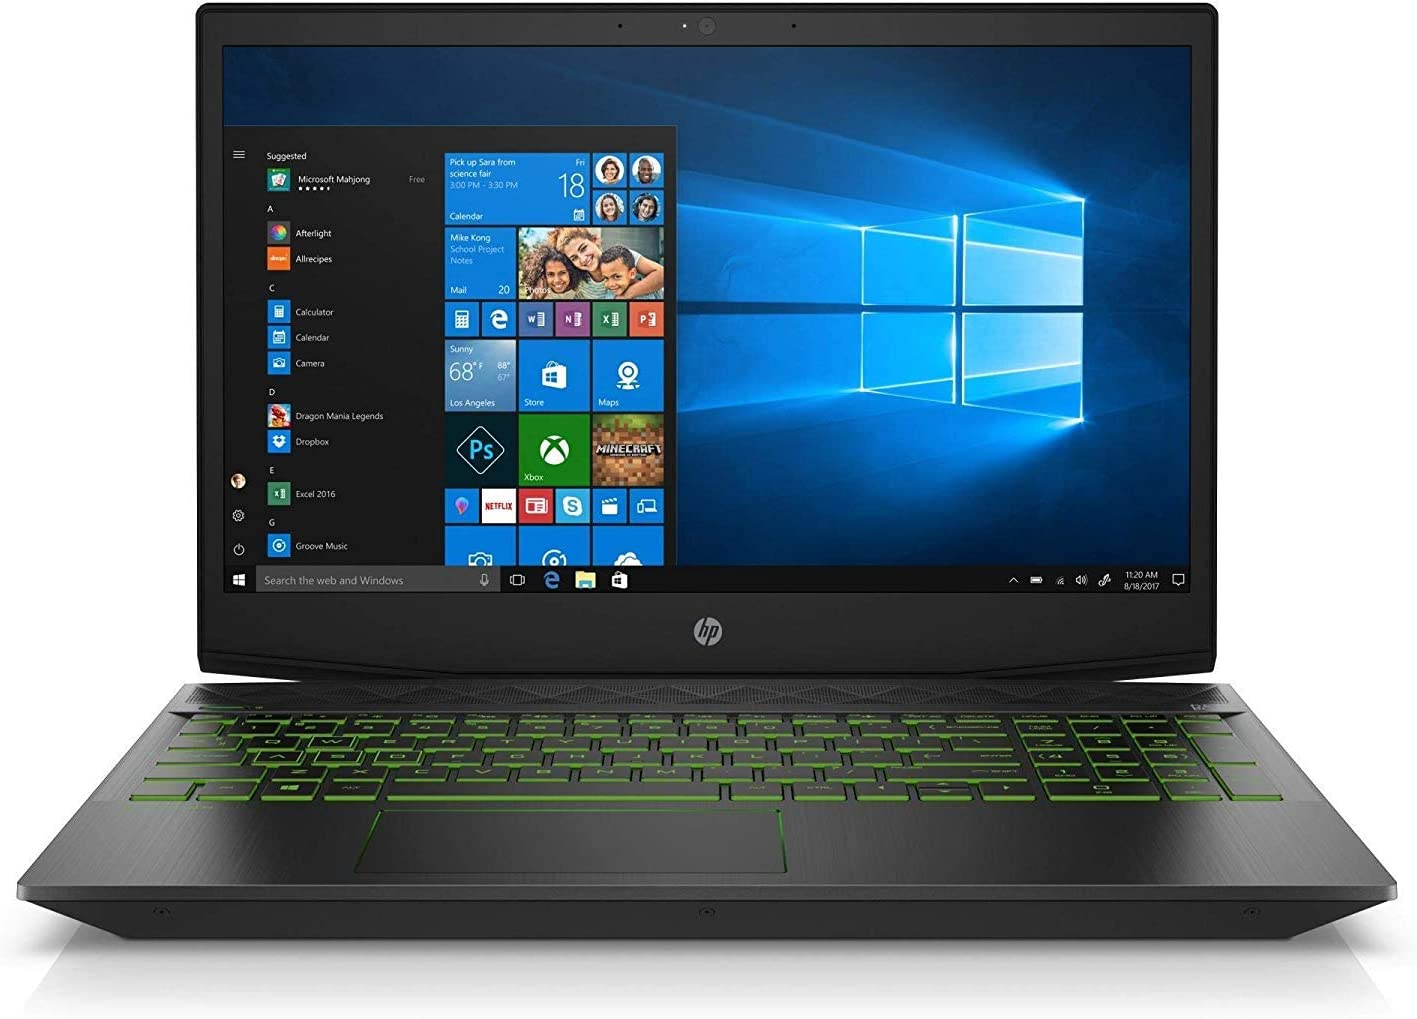 HP Pavilion 2019 Flagship 15.6'' Full HD Gaming Laptop, Intel Quad-Core i5-8300H up to 4GHz 4GB DDR4 128GB SSD 4GB NVIDIA GeForce GTX 1050 Ti Backlit Keyboard Bluetooth 5.0 Win 10